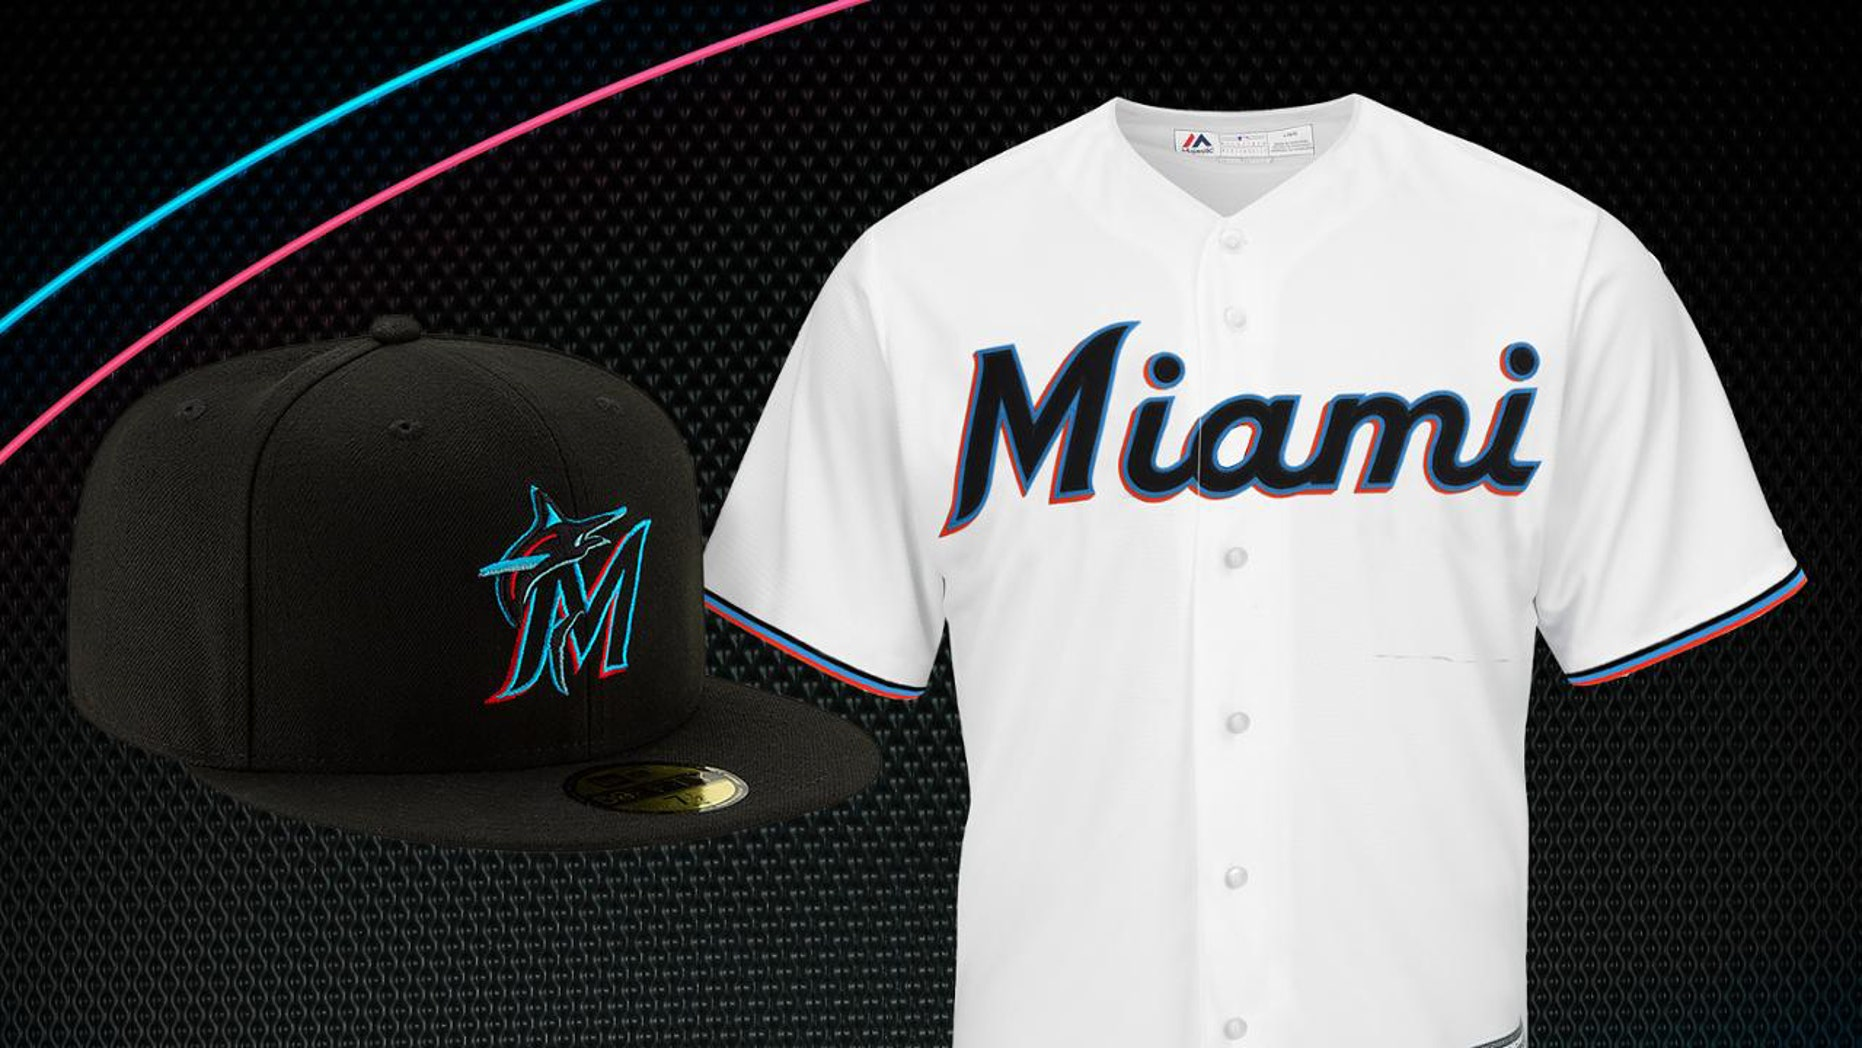 The Miami Marlins debut their new logo, uniforms and colors.